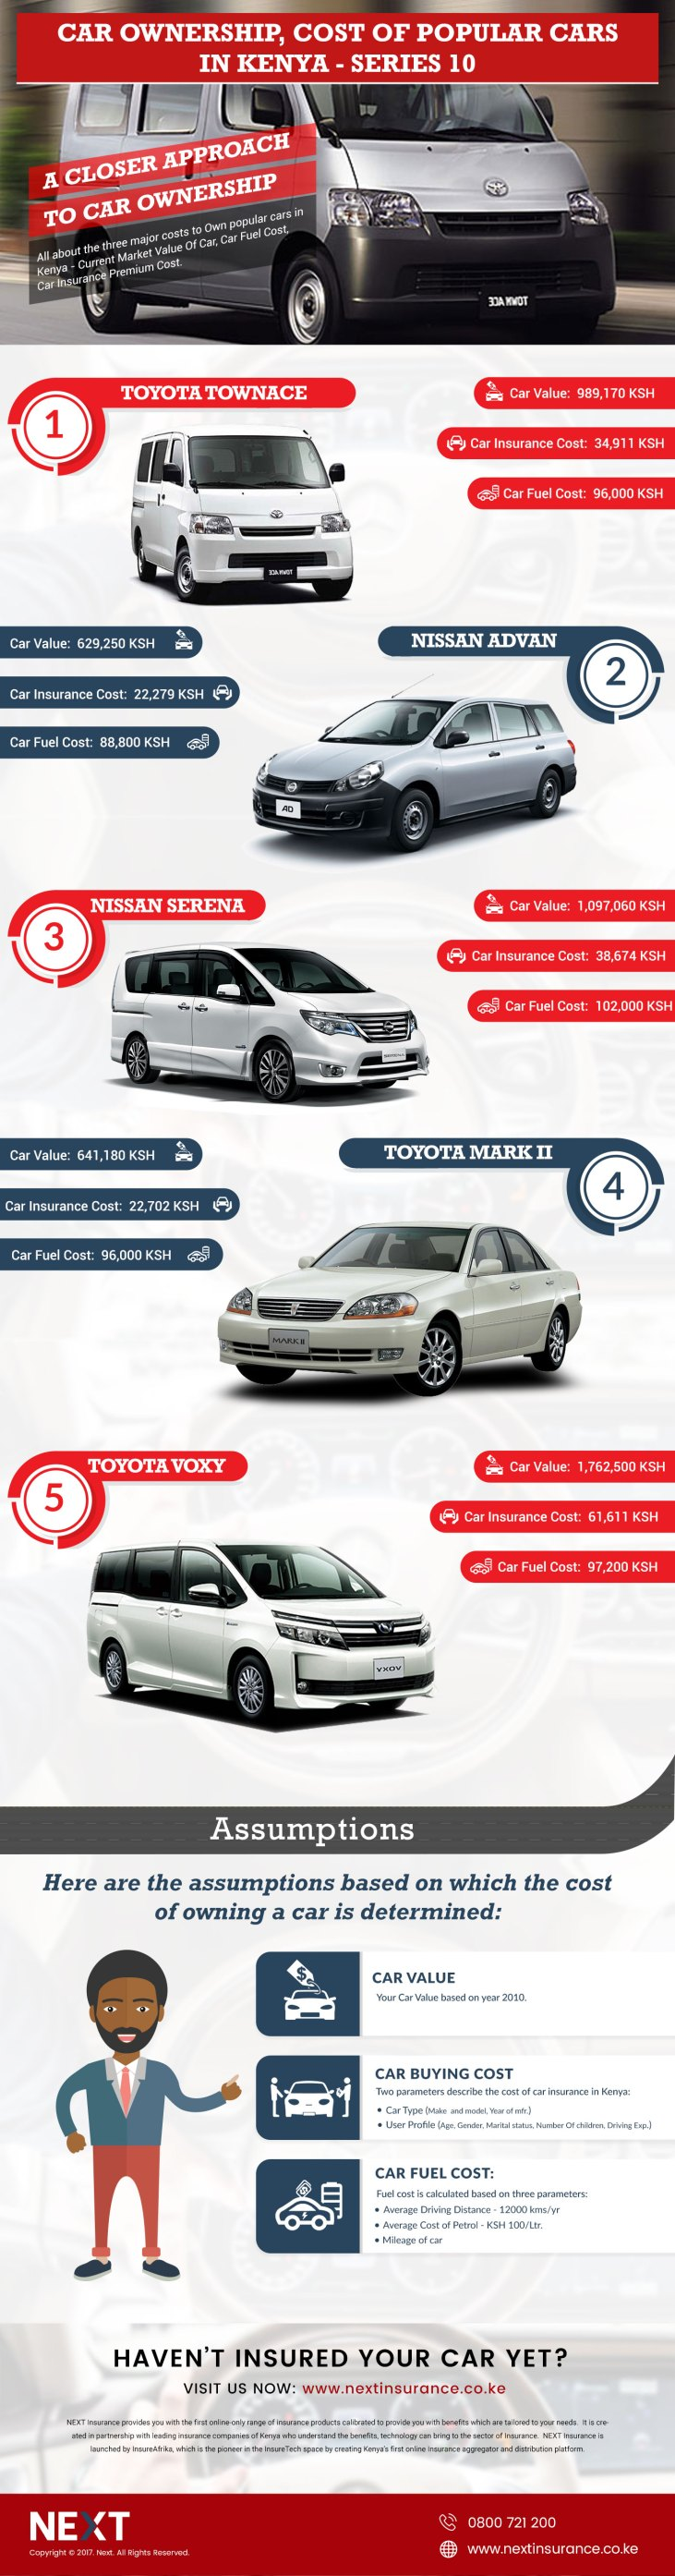 Car Ownership Cost, Top 5 Cars in Kenya Infographic – Series 10